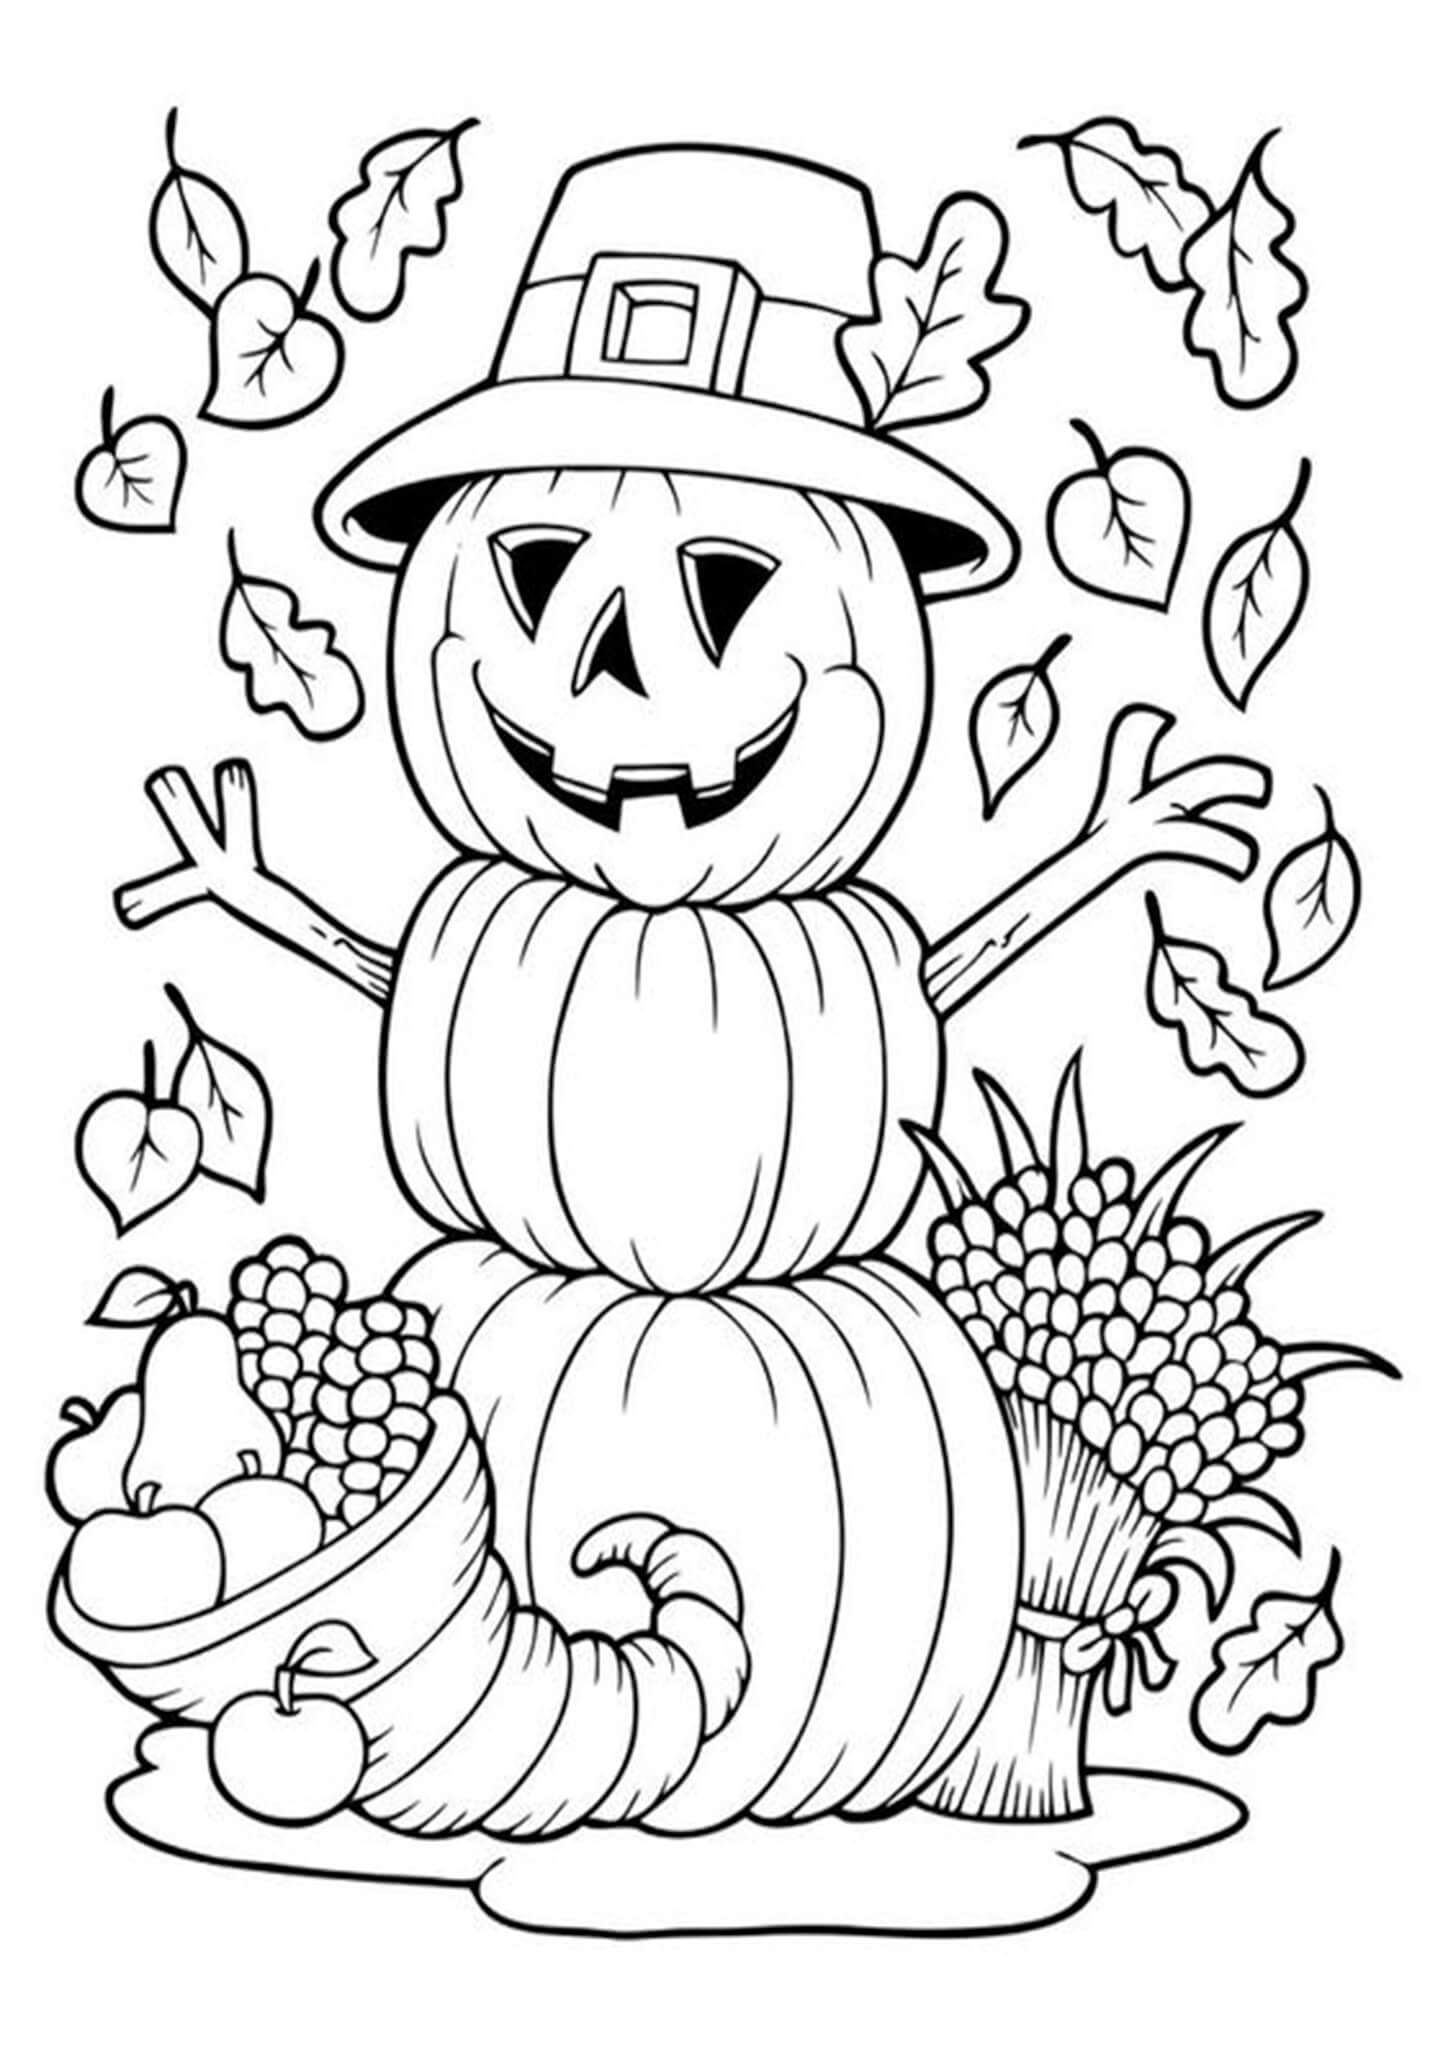 Free Easy To Print Halloween Coloring Pages Halloween Coloring Book Free Thanksgiving Coloring Pages Thanksgiving Coloring Pages